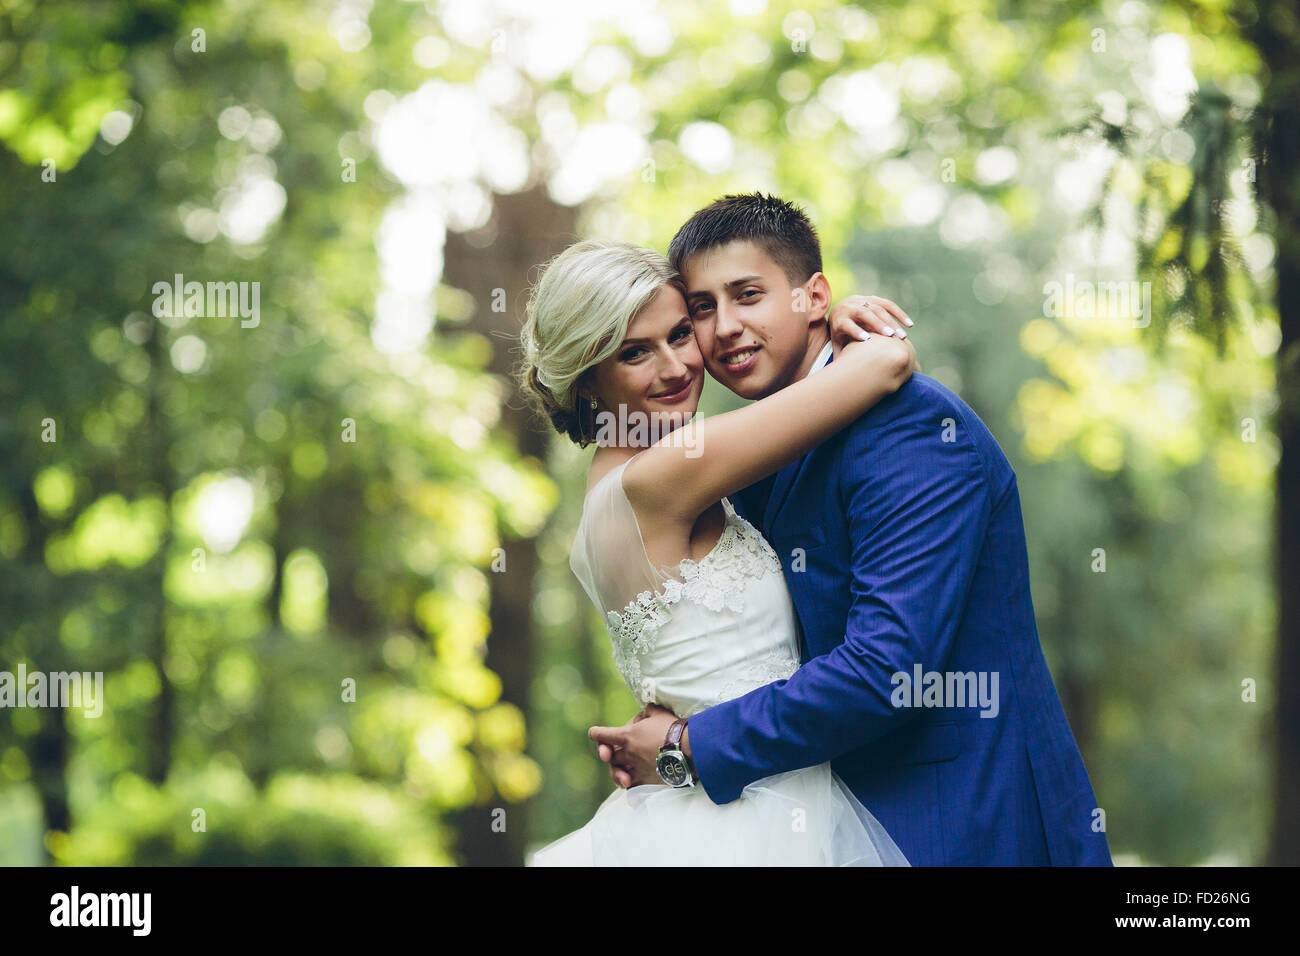 Beautiful wedding couple hugging in the park Photo Stock